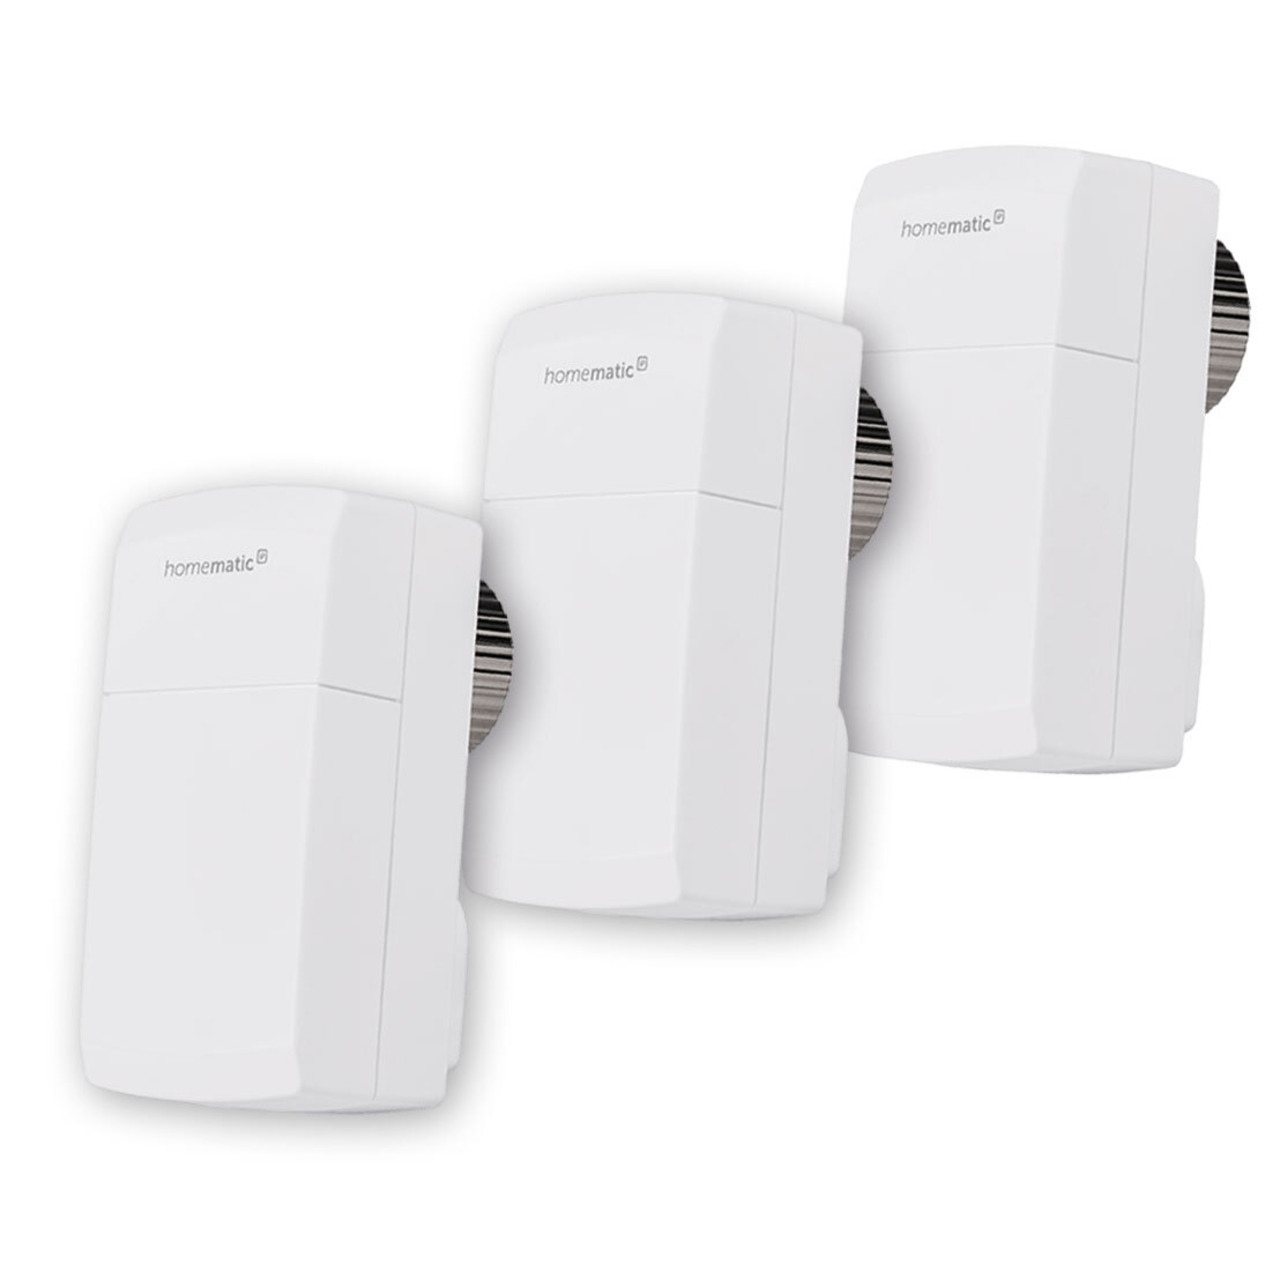 Homematic IP Smart Home 3er Set Heizkörperthermostat kompakt HmIP-eTRV-C inkl- Demontageschutz